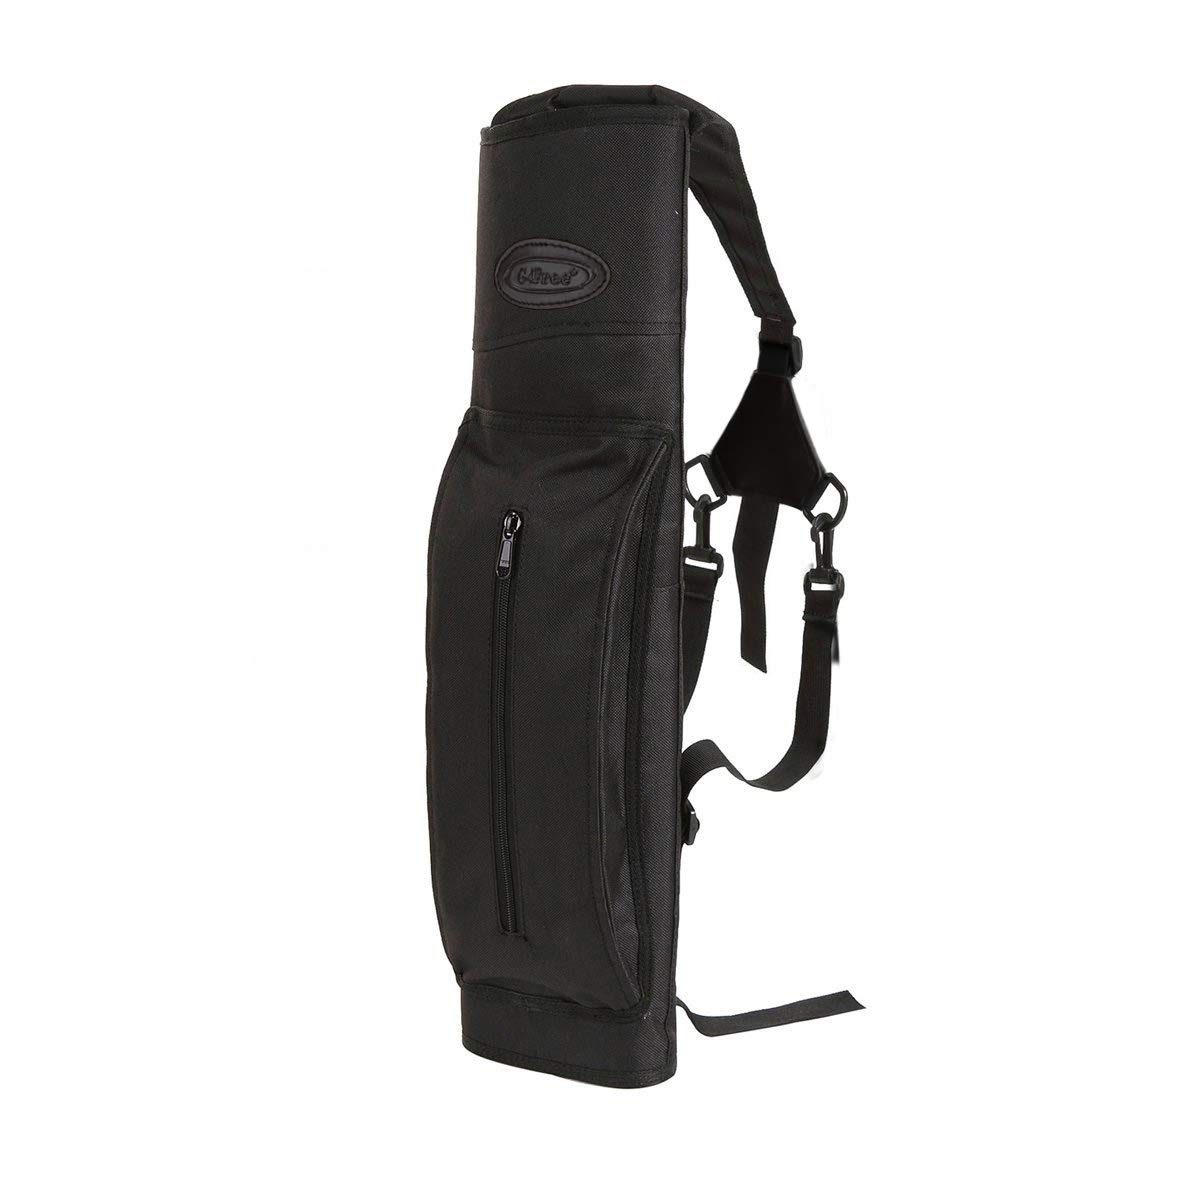 G4Free Archery Deluxe Canvas Back Arrow Quiver Hunting Target Arrow Quiver(Black)